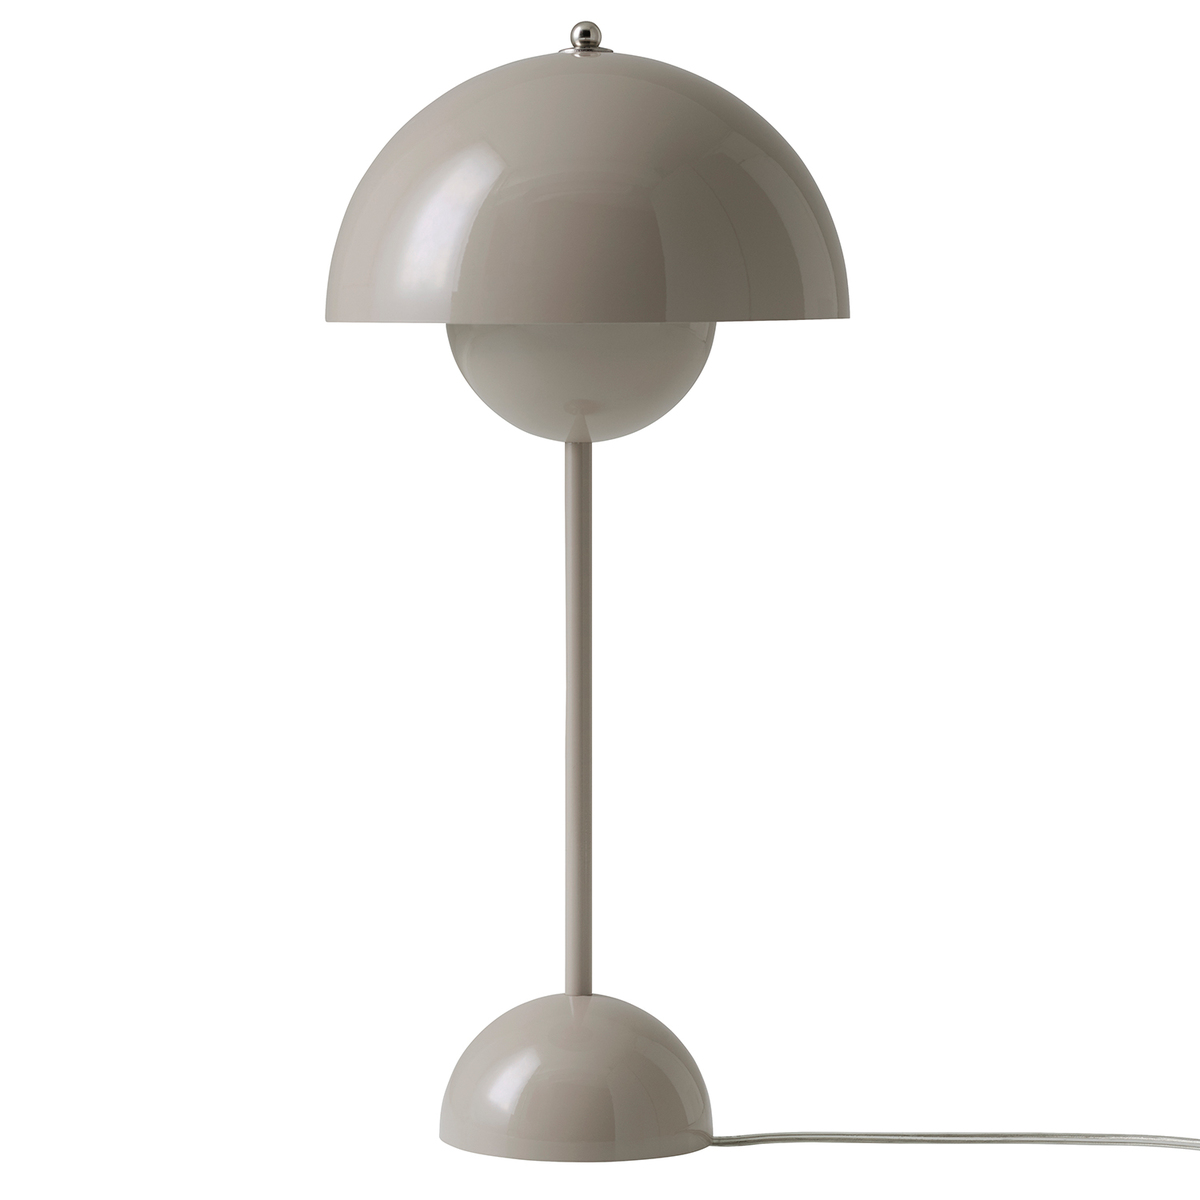 &Tradition Flowerpot VP3 table lamp, grey beige from &Tradition